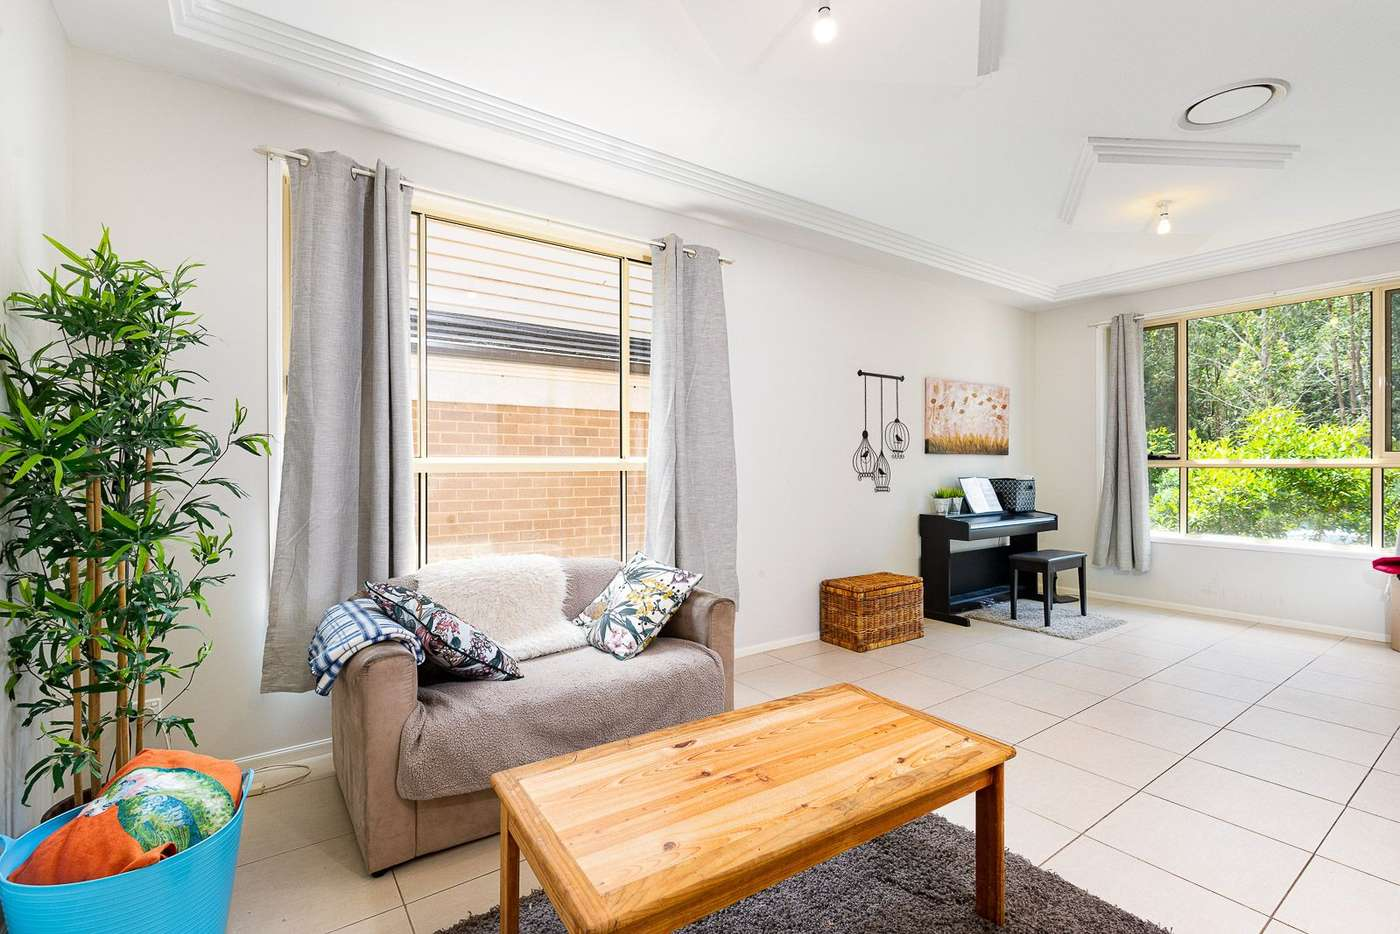 Main view of Homely house listing, 4 Darrabarra Way, Rouse Hill NSW 2155